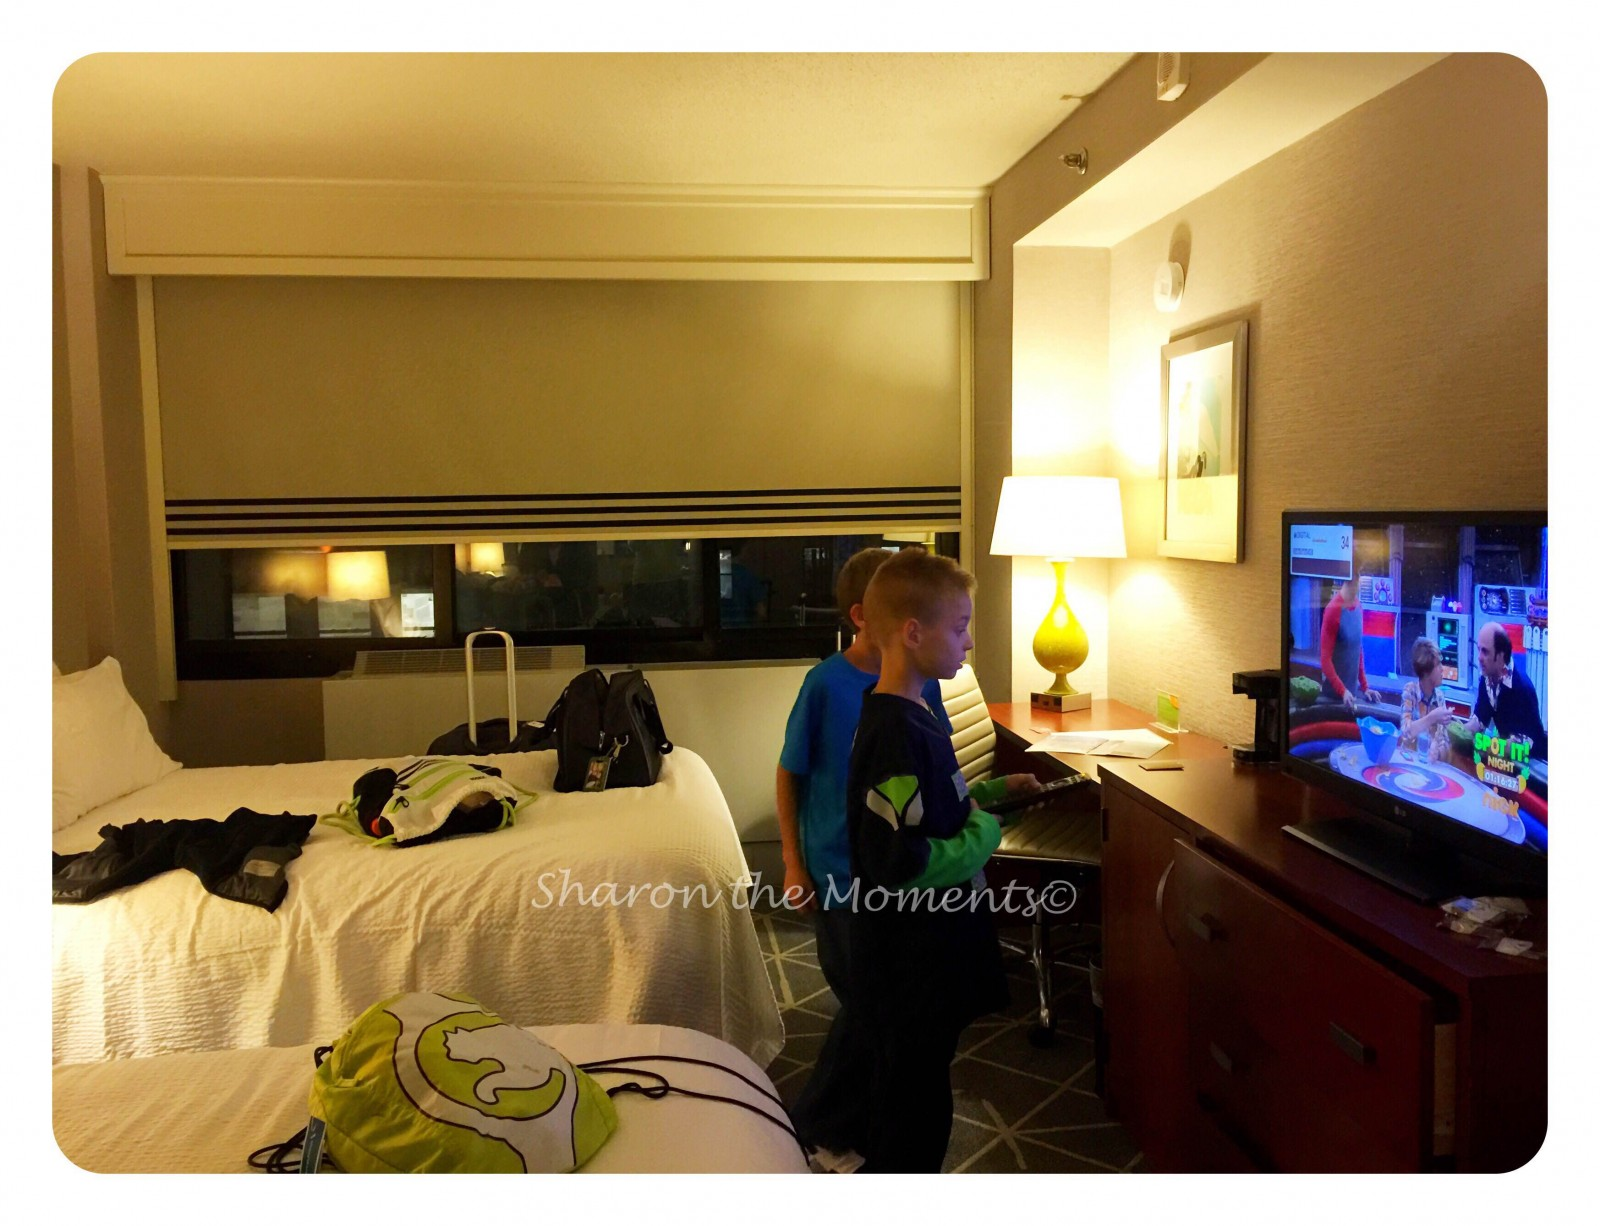 Courtyard by Marriott in New York City Great Location| Sharon the Moments Blog